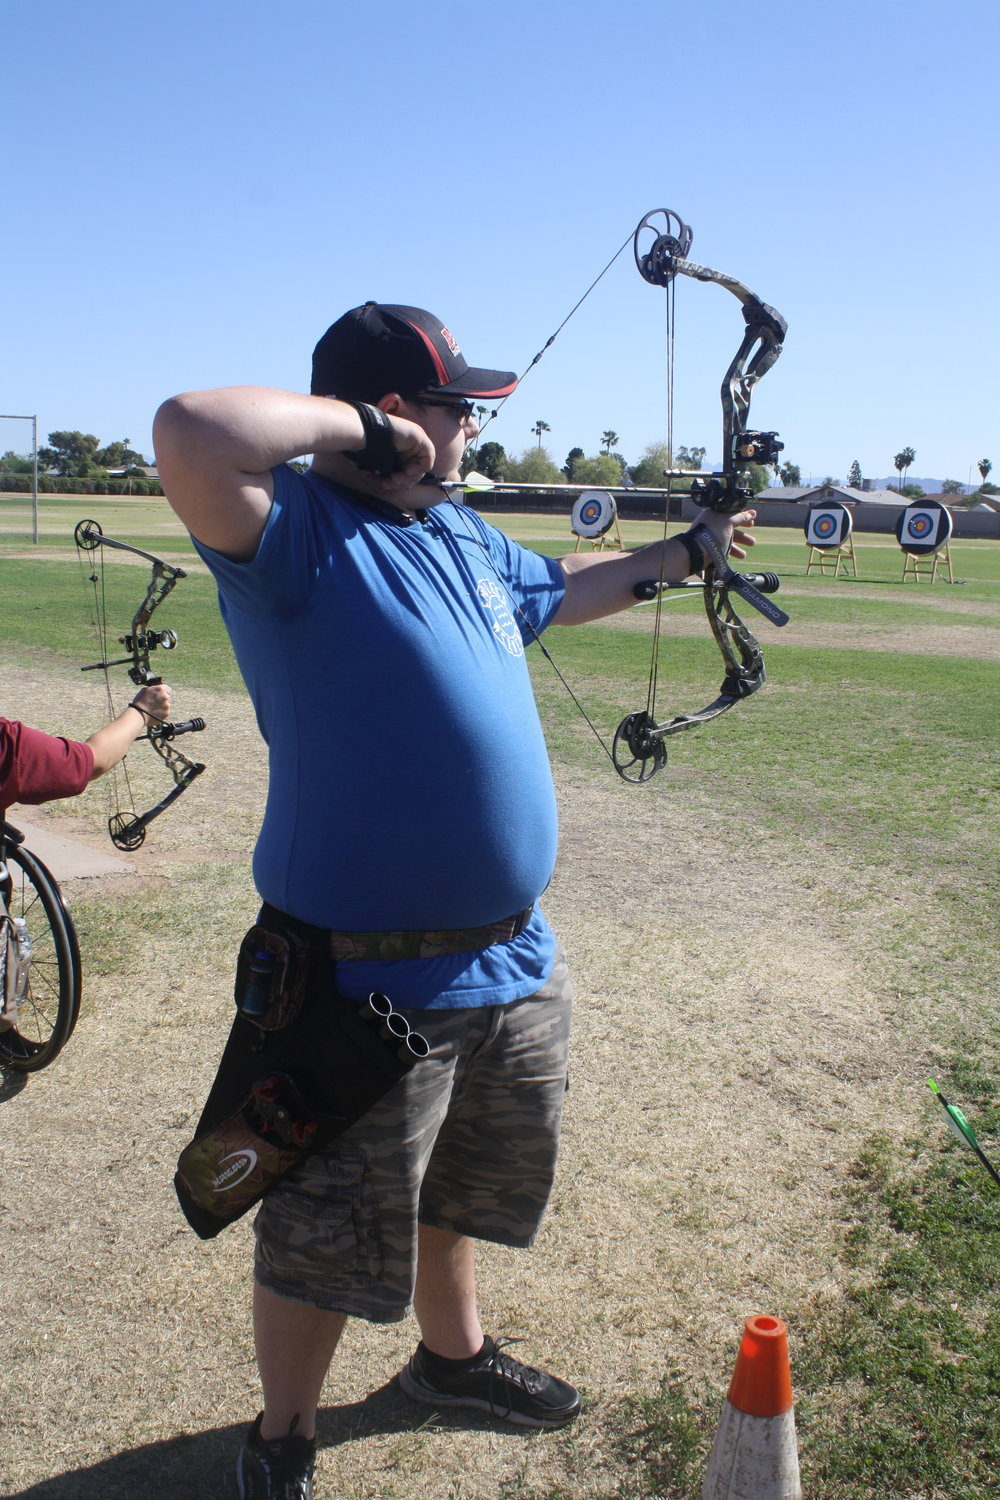 - Matthew Geib is a 19-year-old archer who has just completed his second archery season with AzDS.  Matthew has a traumatic brain injury that he sustained in February of 2016 after being hit by a school bus. Matthew had no prior shooting experience before participating in the archery program with AzDS, and now he has qualified for Junior Nationals with a score of 602 at the Desert Challenge Games. Matthew says that the AzDS archery program has led him to a great group of friends that accepts him for who he is and doesn't judge him; he has several other participants that he considers to be friends now. His biggest accomplishment this season was beating the goal that John Dee set for him at the beginning of the season. We are so excited to have him traveling to Fort Wayne, Indiana to compete at Junior Nationals!